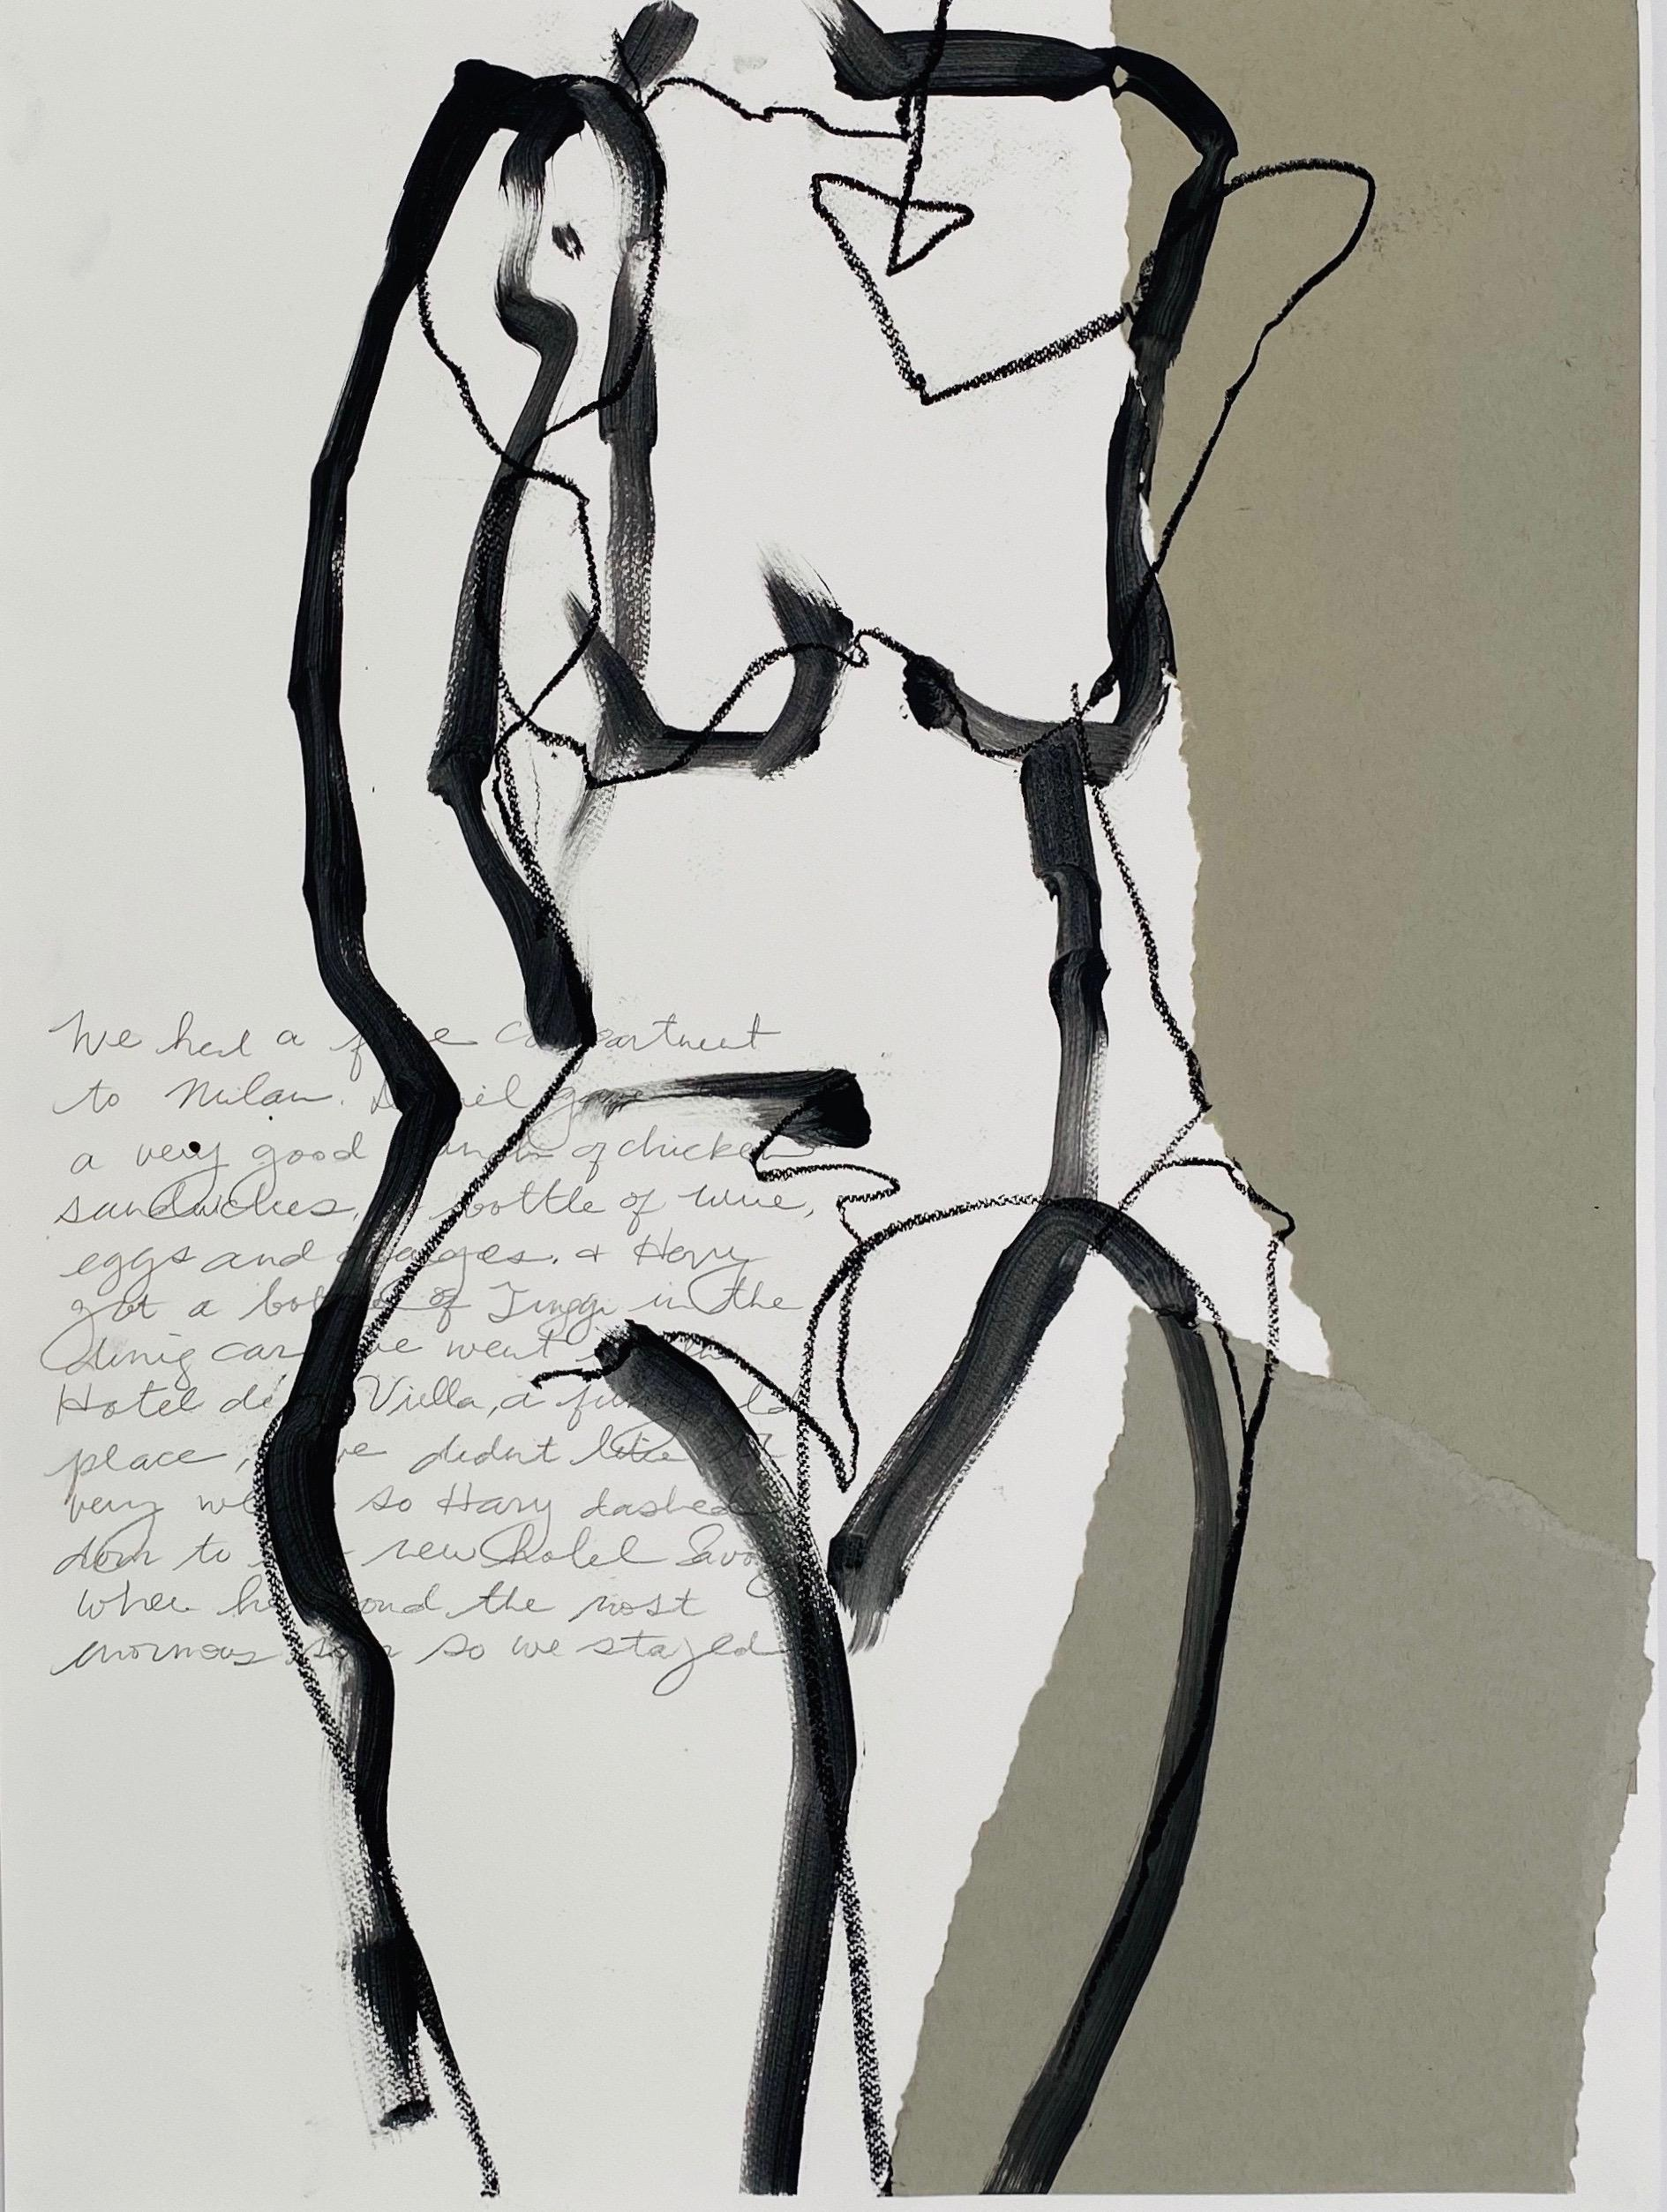 Chicken Sandwiches, Abstract Figurative Mixed Media, Works on Paper, Signed